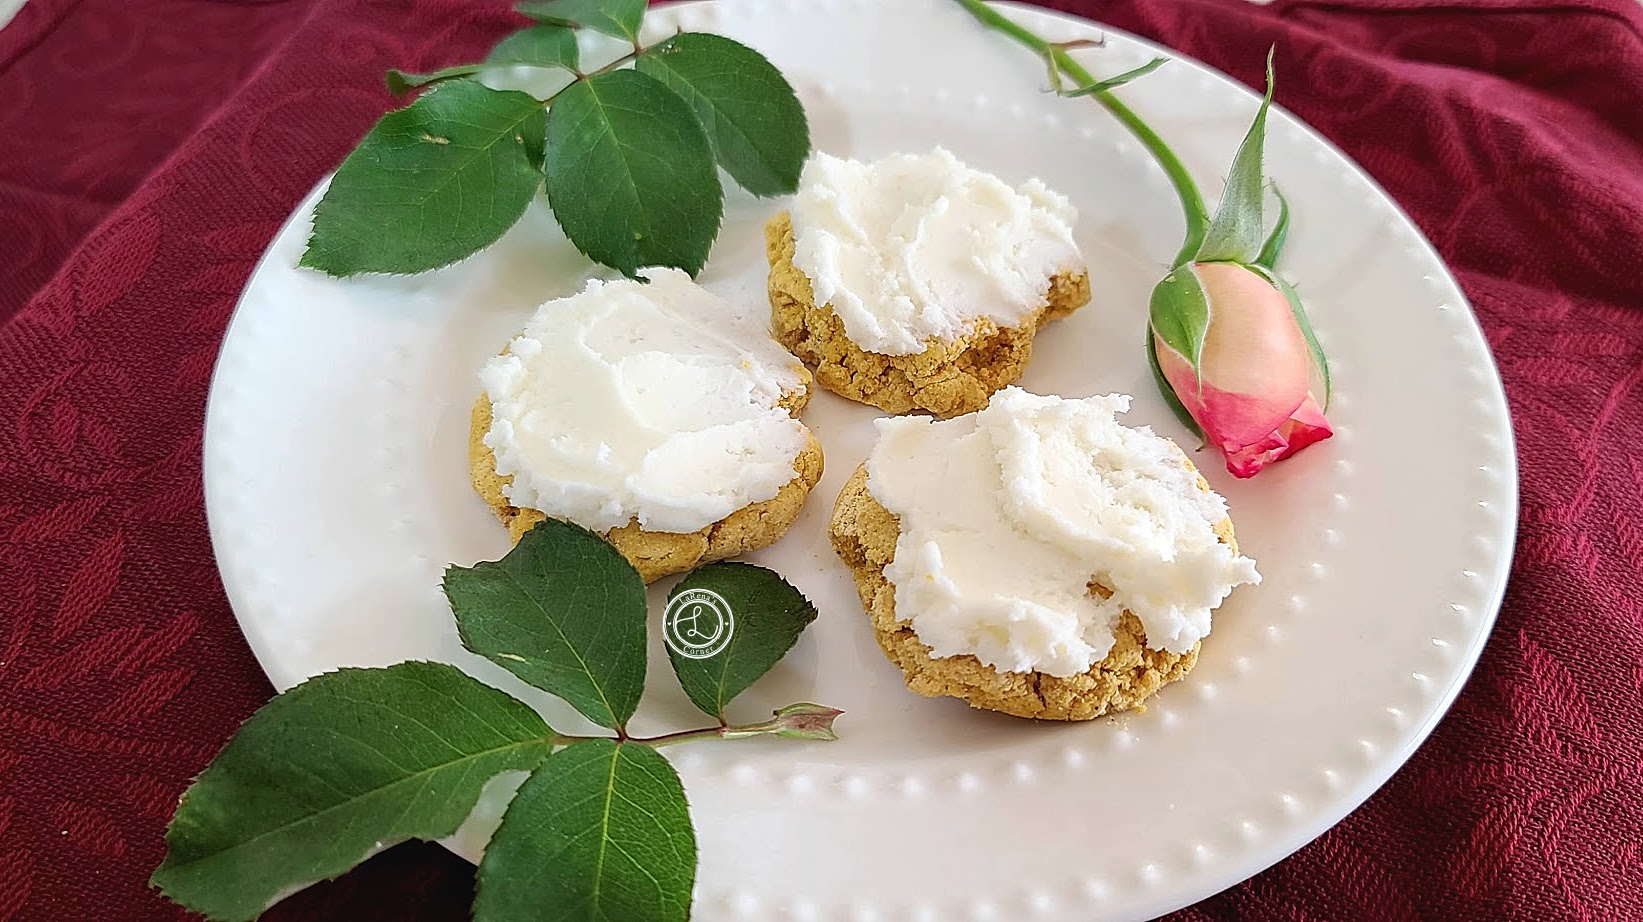 A far away picture of Cream Cheese Cinnamon Frosting on Pumpkin cookies on a plate with leaves and a rose bud.